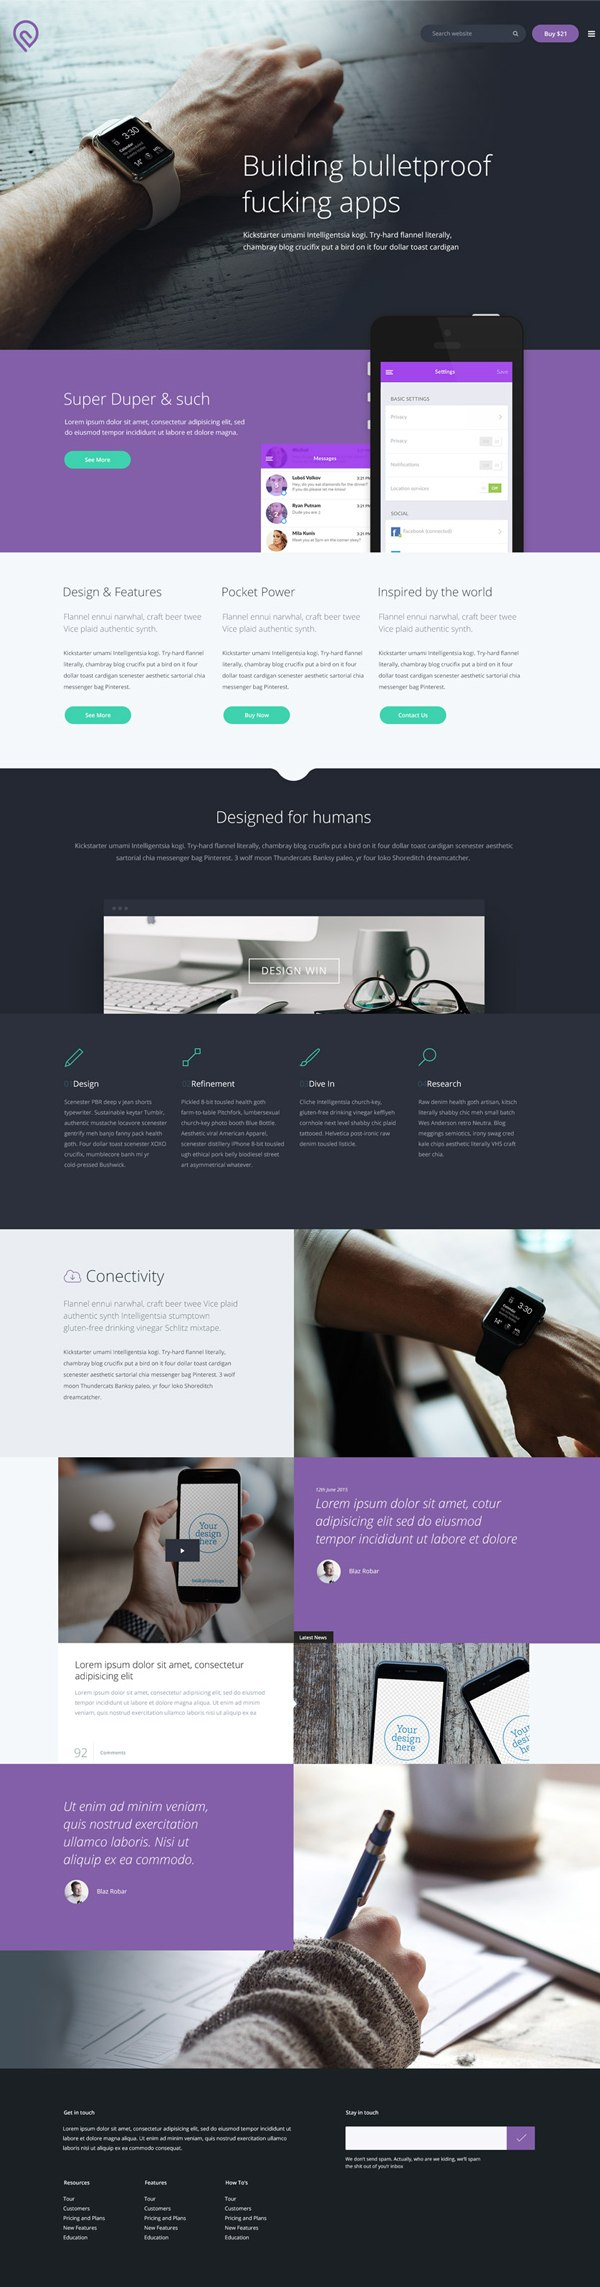 New Free Psd Website Templates  Freebies  Graphic Design Junction Throughout Free Psd Website Templates For Business